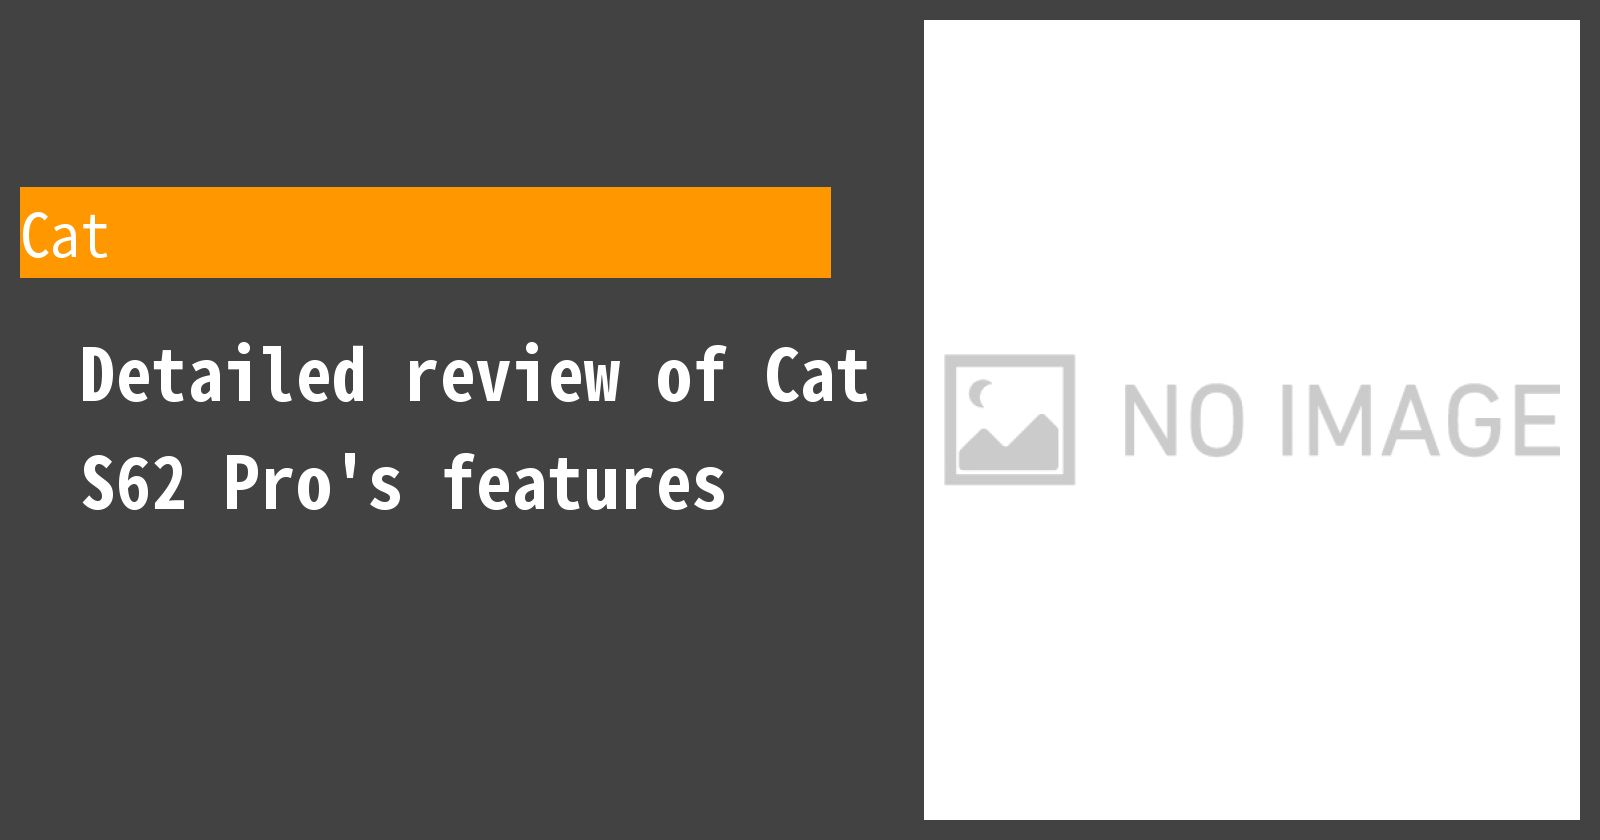 Detailed review of Cat S62 Pro's features